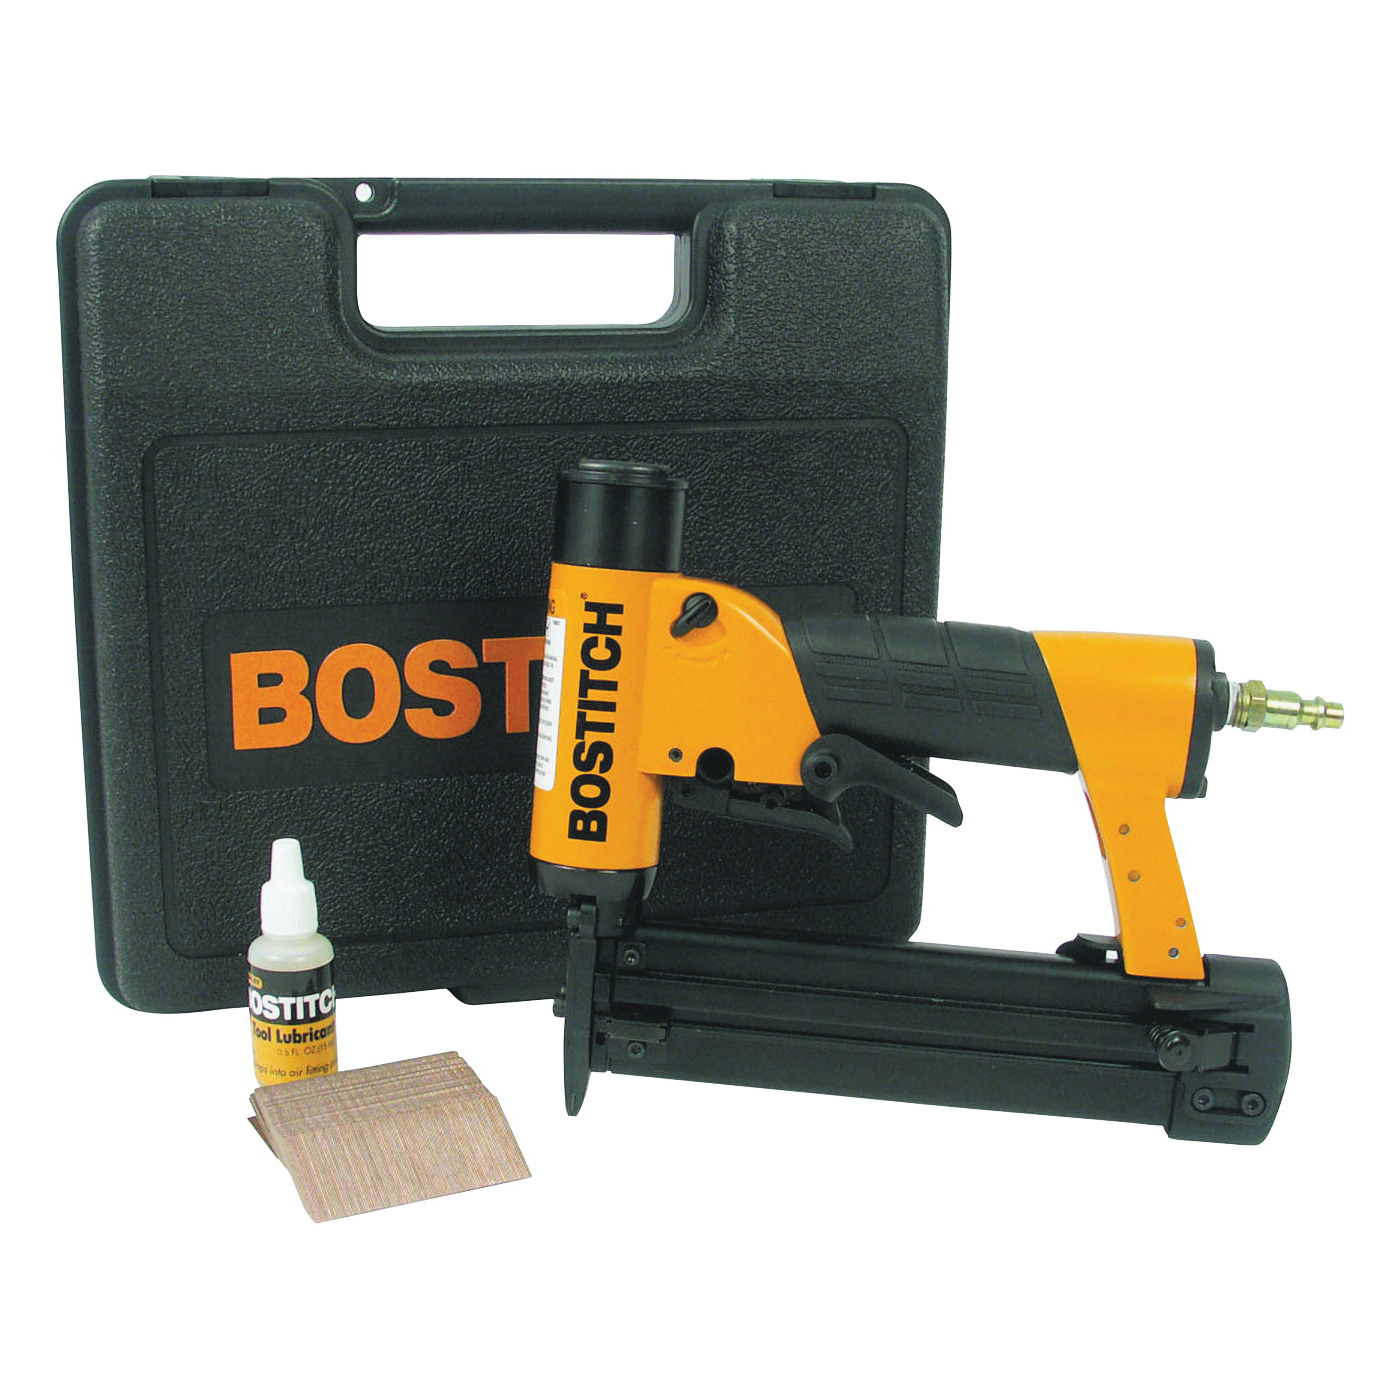 Picture of Bostitch HP118K Pinner Kit, 200 Magazine, Glue Collation, 1/2 to 1-3/16 in Fastener